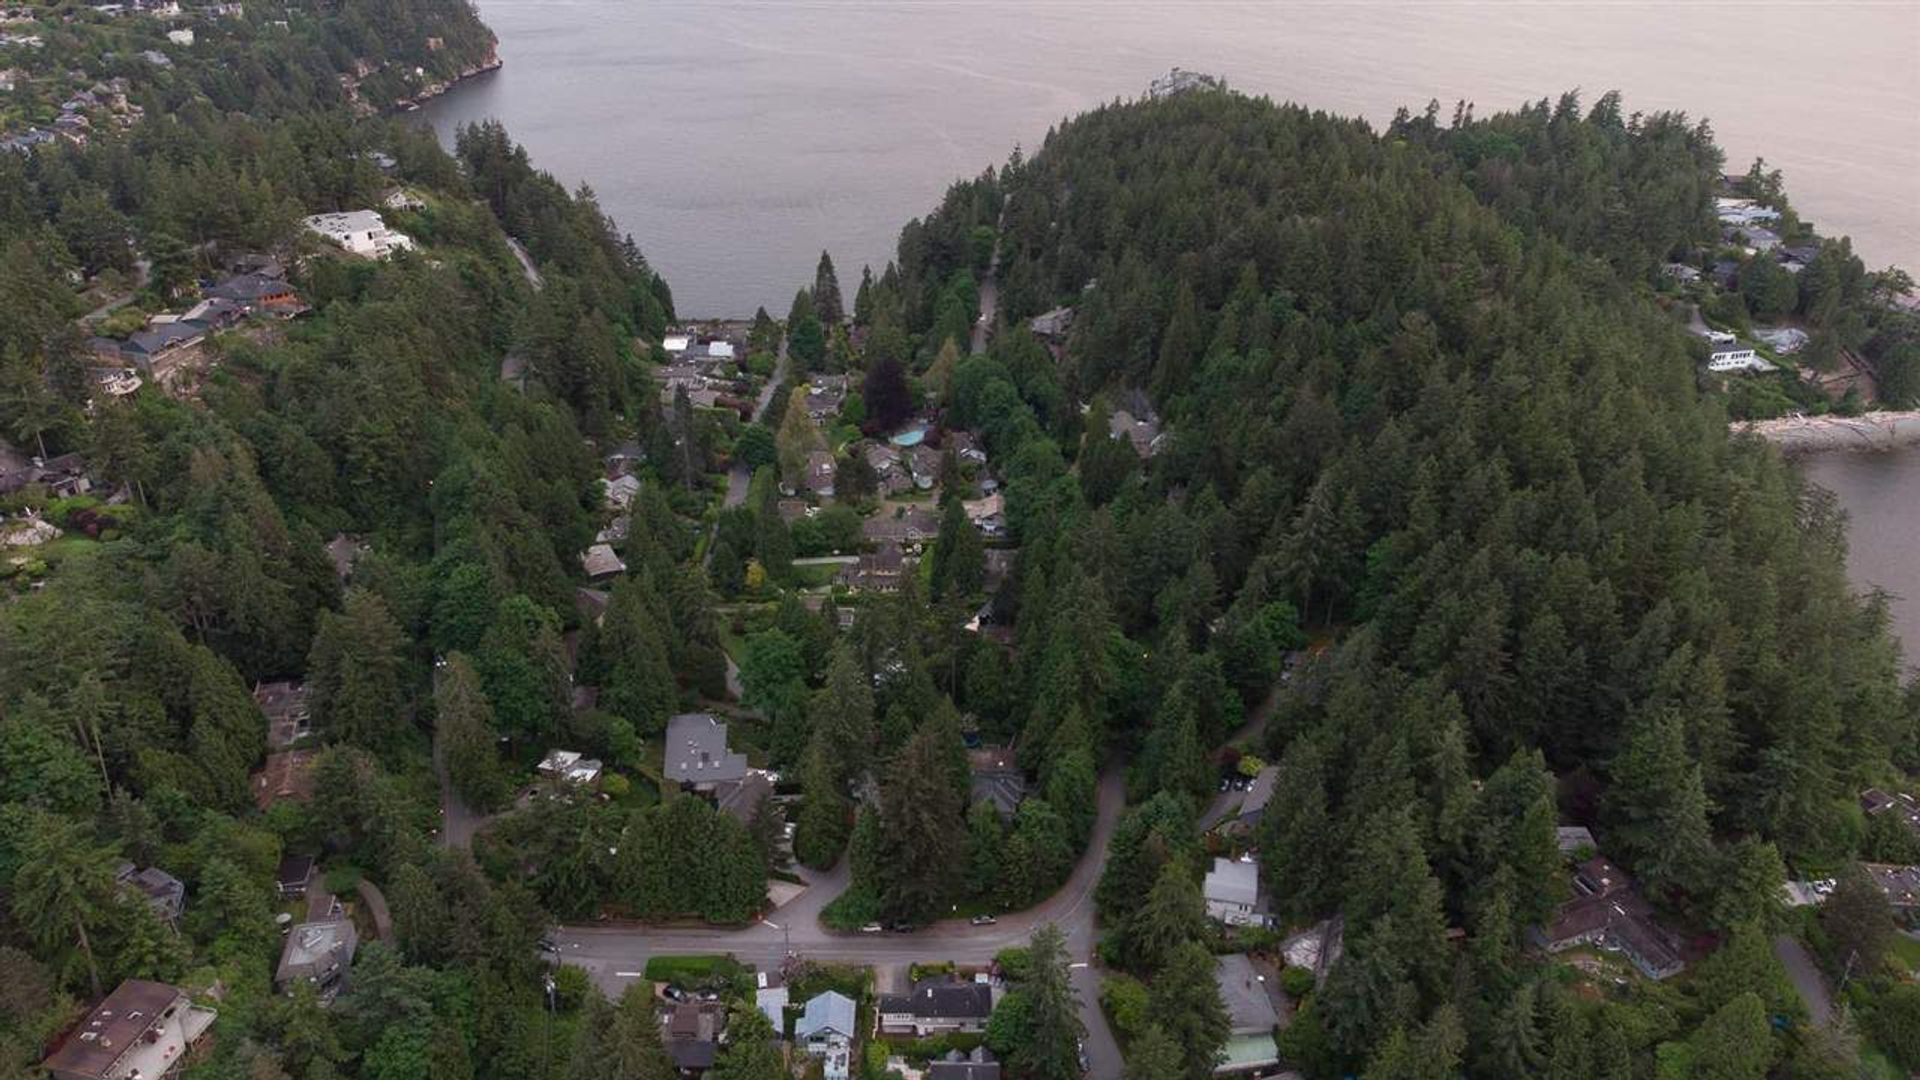 6875-marine-drive-whytecliff-west-vancouver-35-1 at 6875 Marine Drive, Whytecliff, West Vancouver